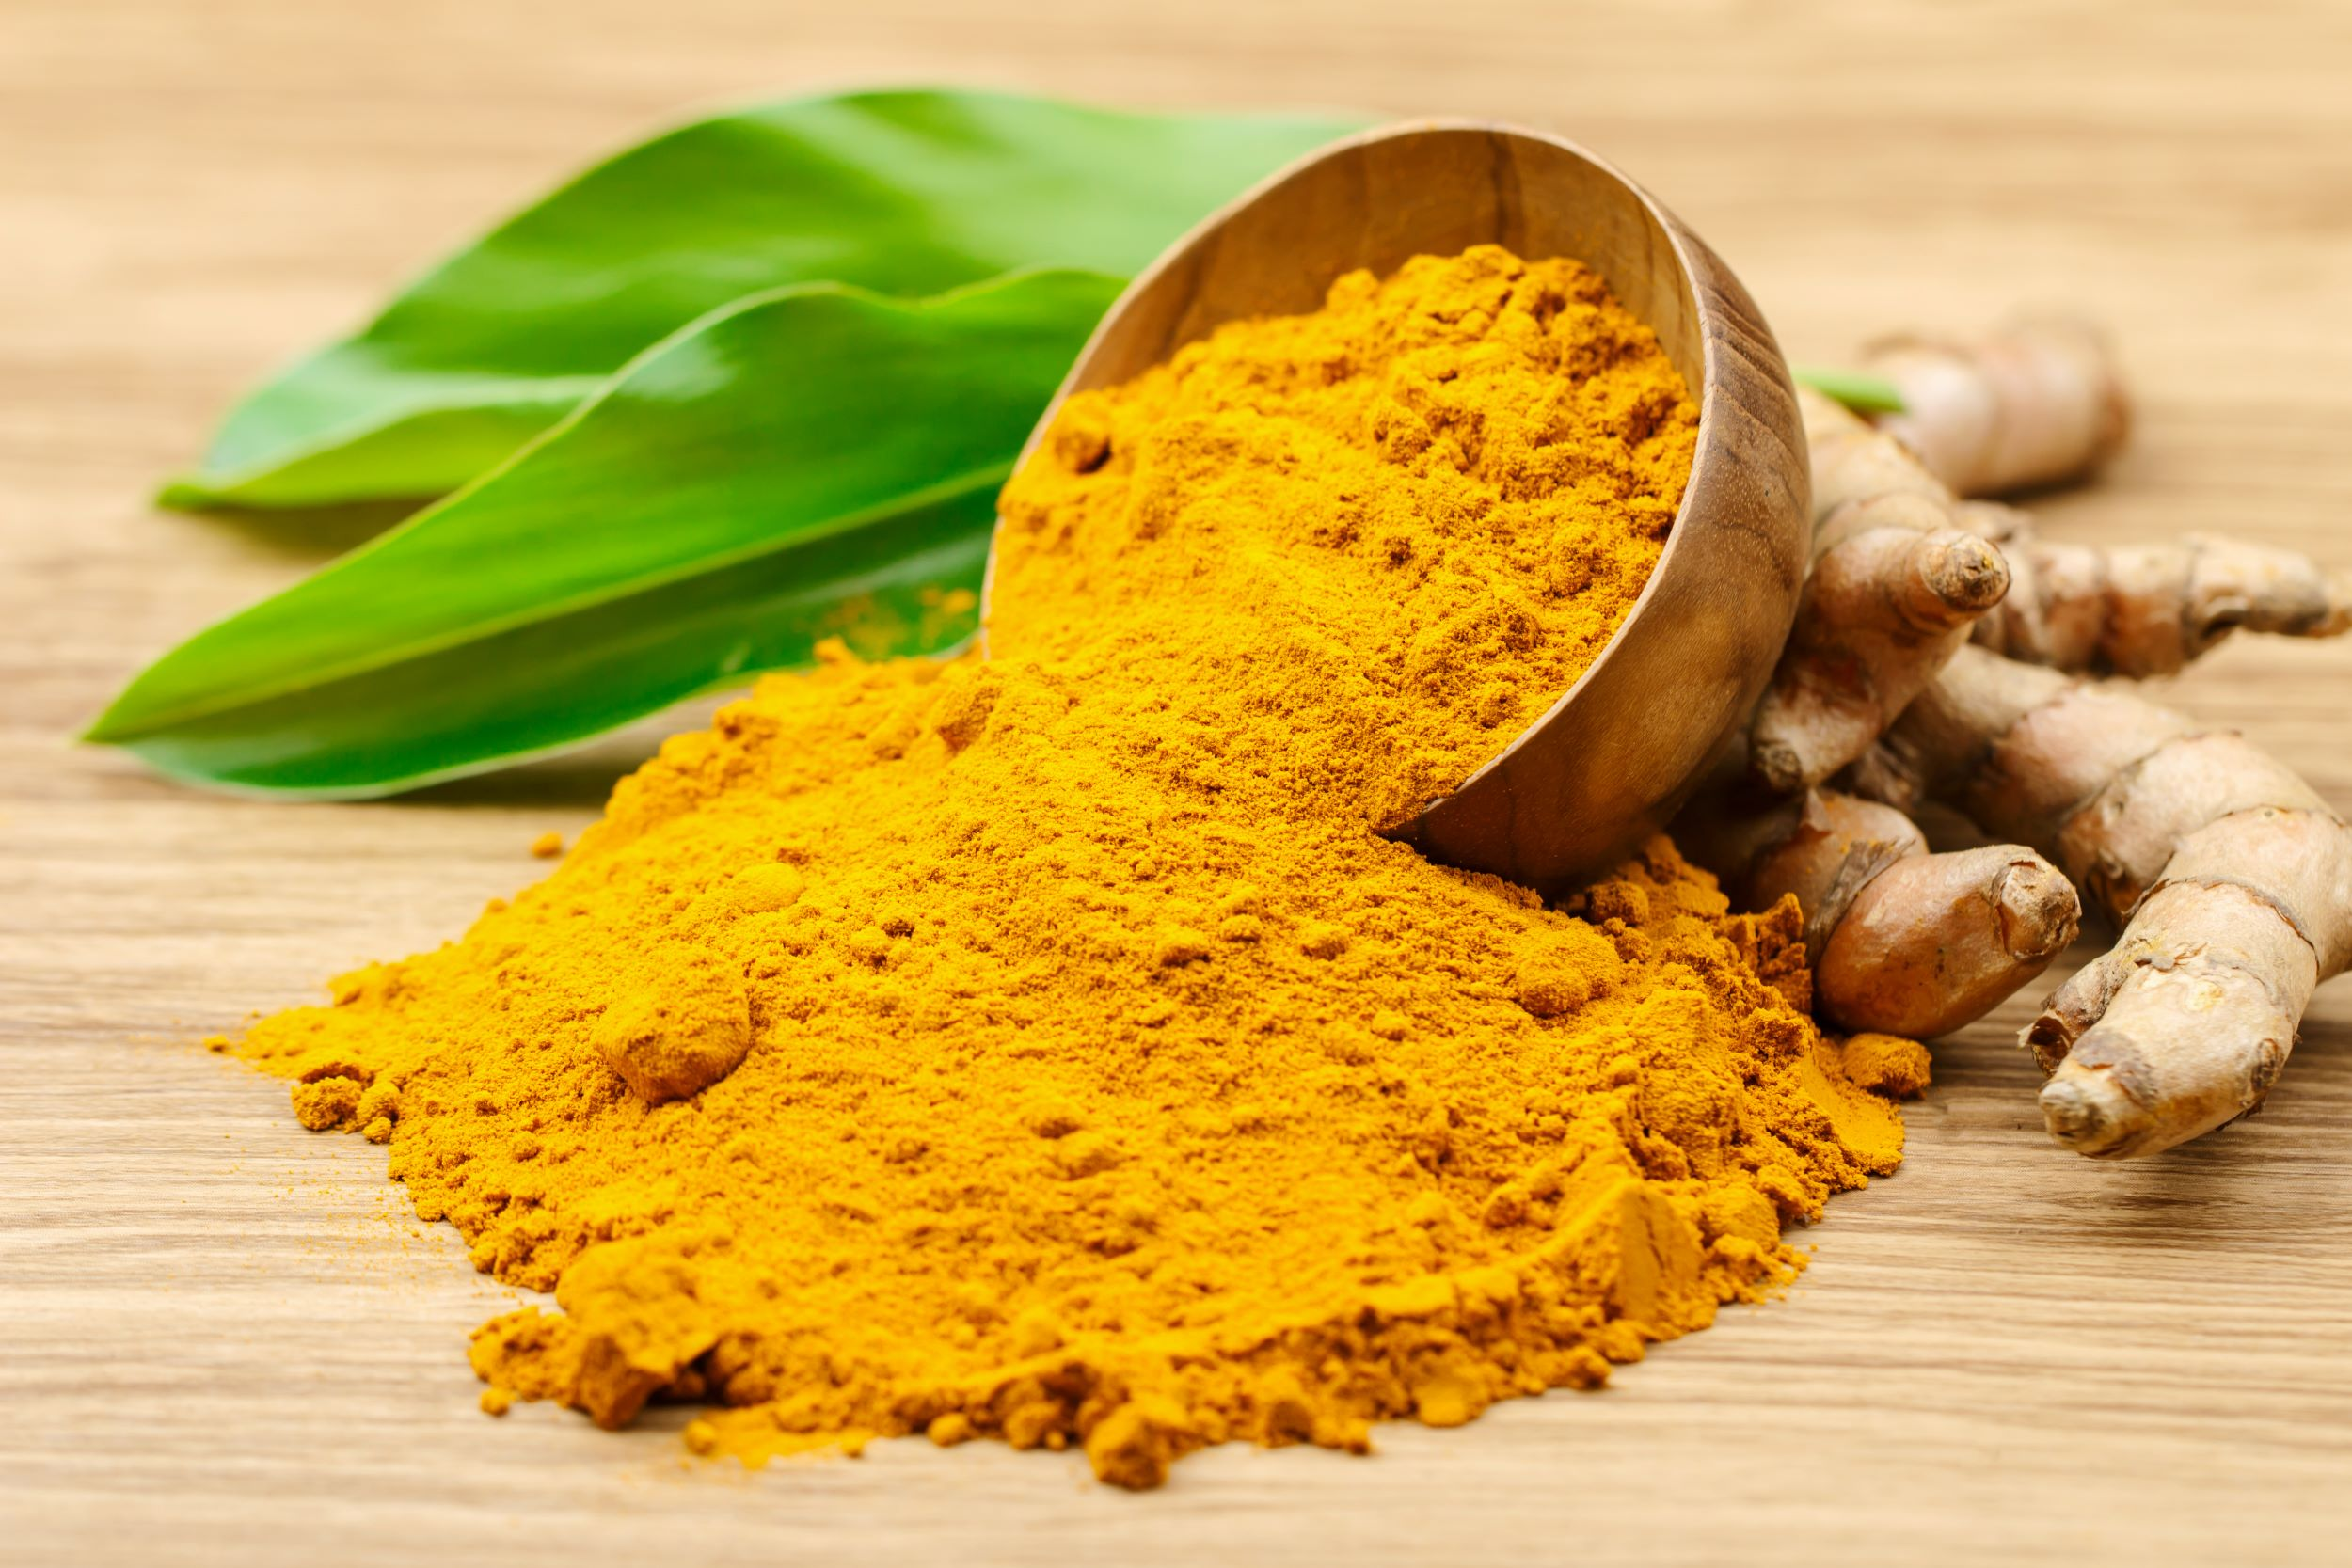 Turmeric for Weight Loss – Is This Possible?